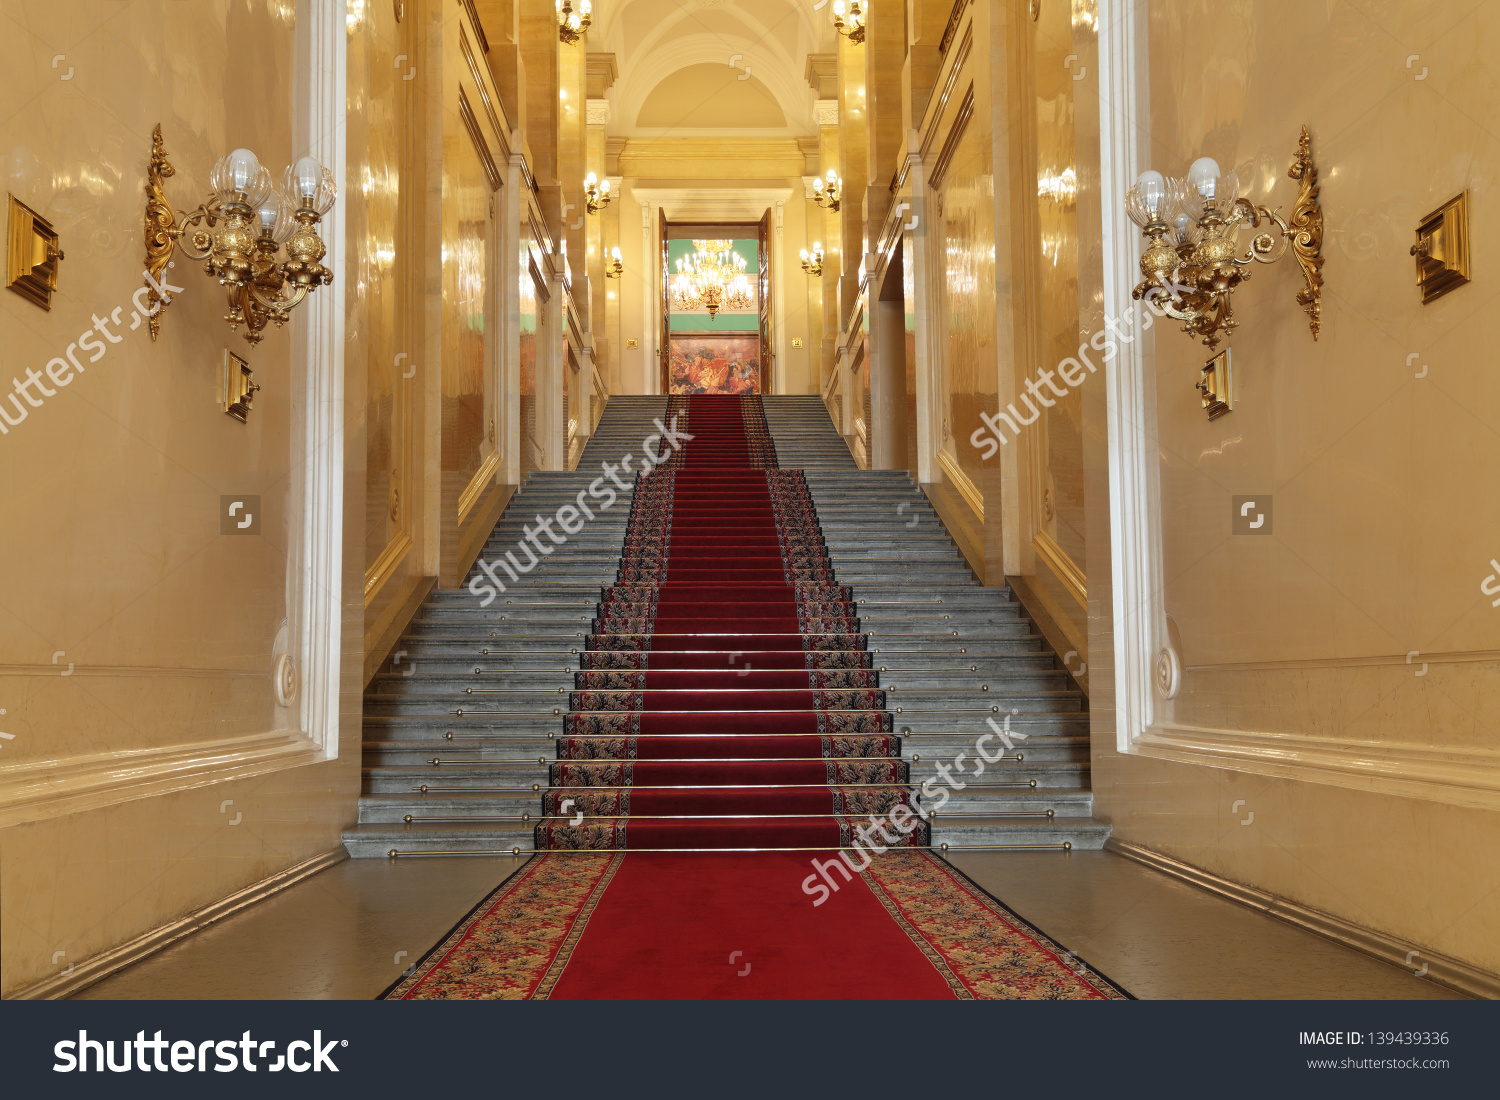 Moscowfeb 22 Interior View Grand Kremlin Stock Photo 139439336.